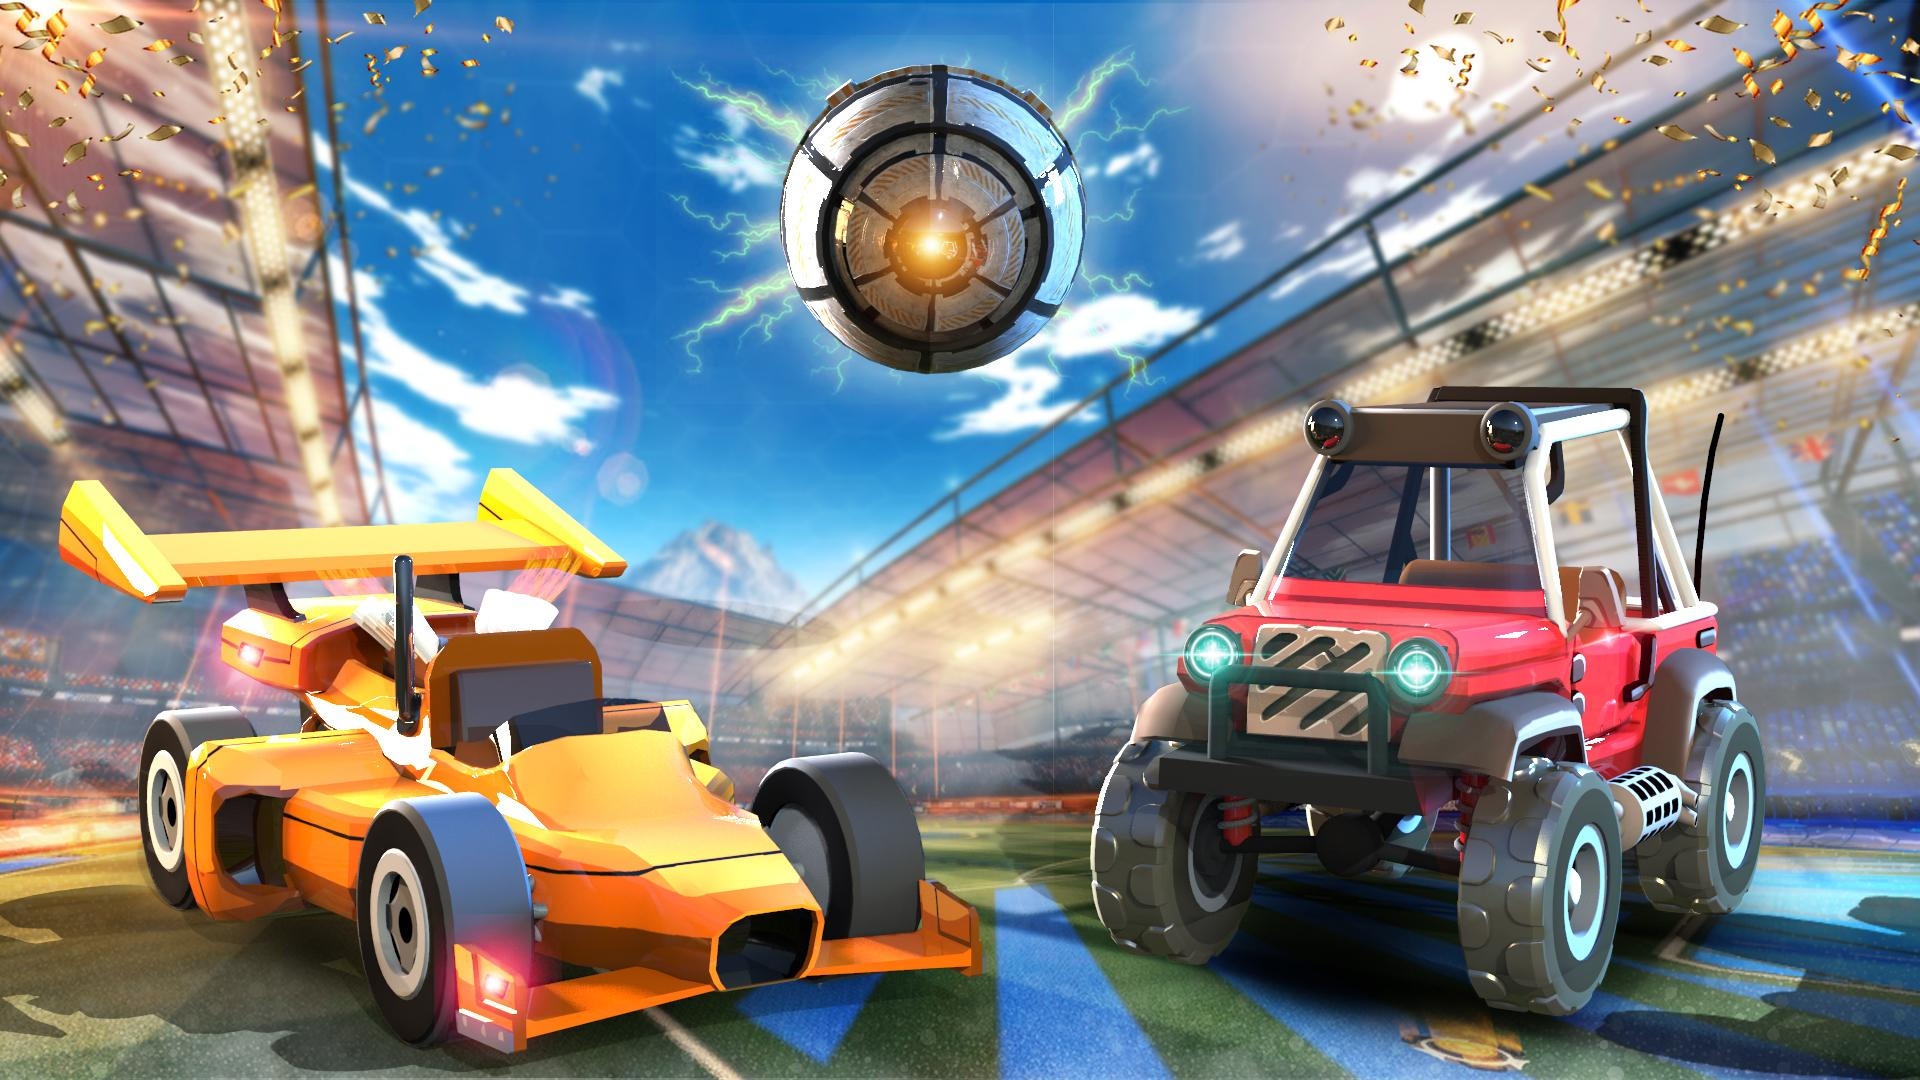 Rocket Car Soccer league - Super Football 1.7 Screenshot 7